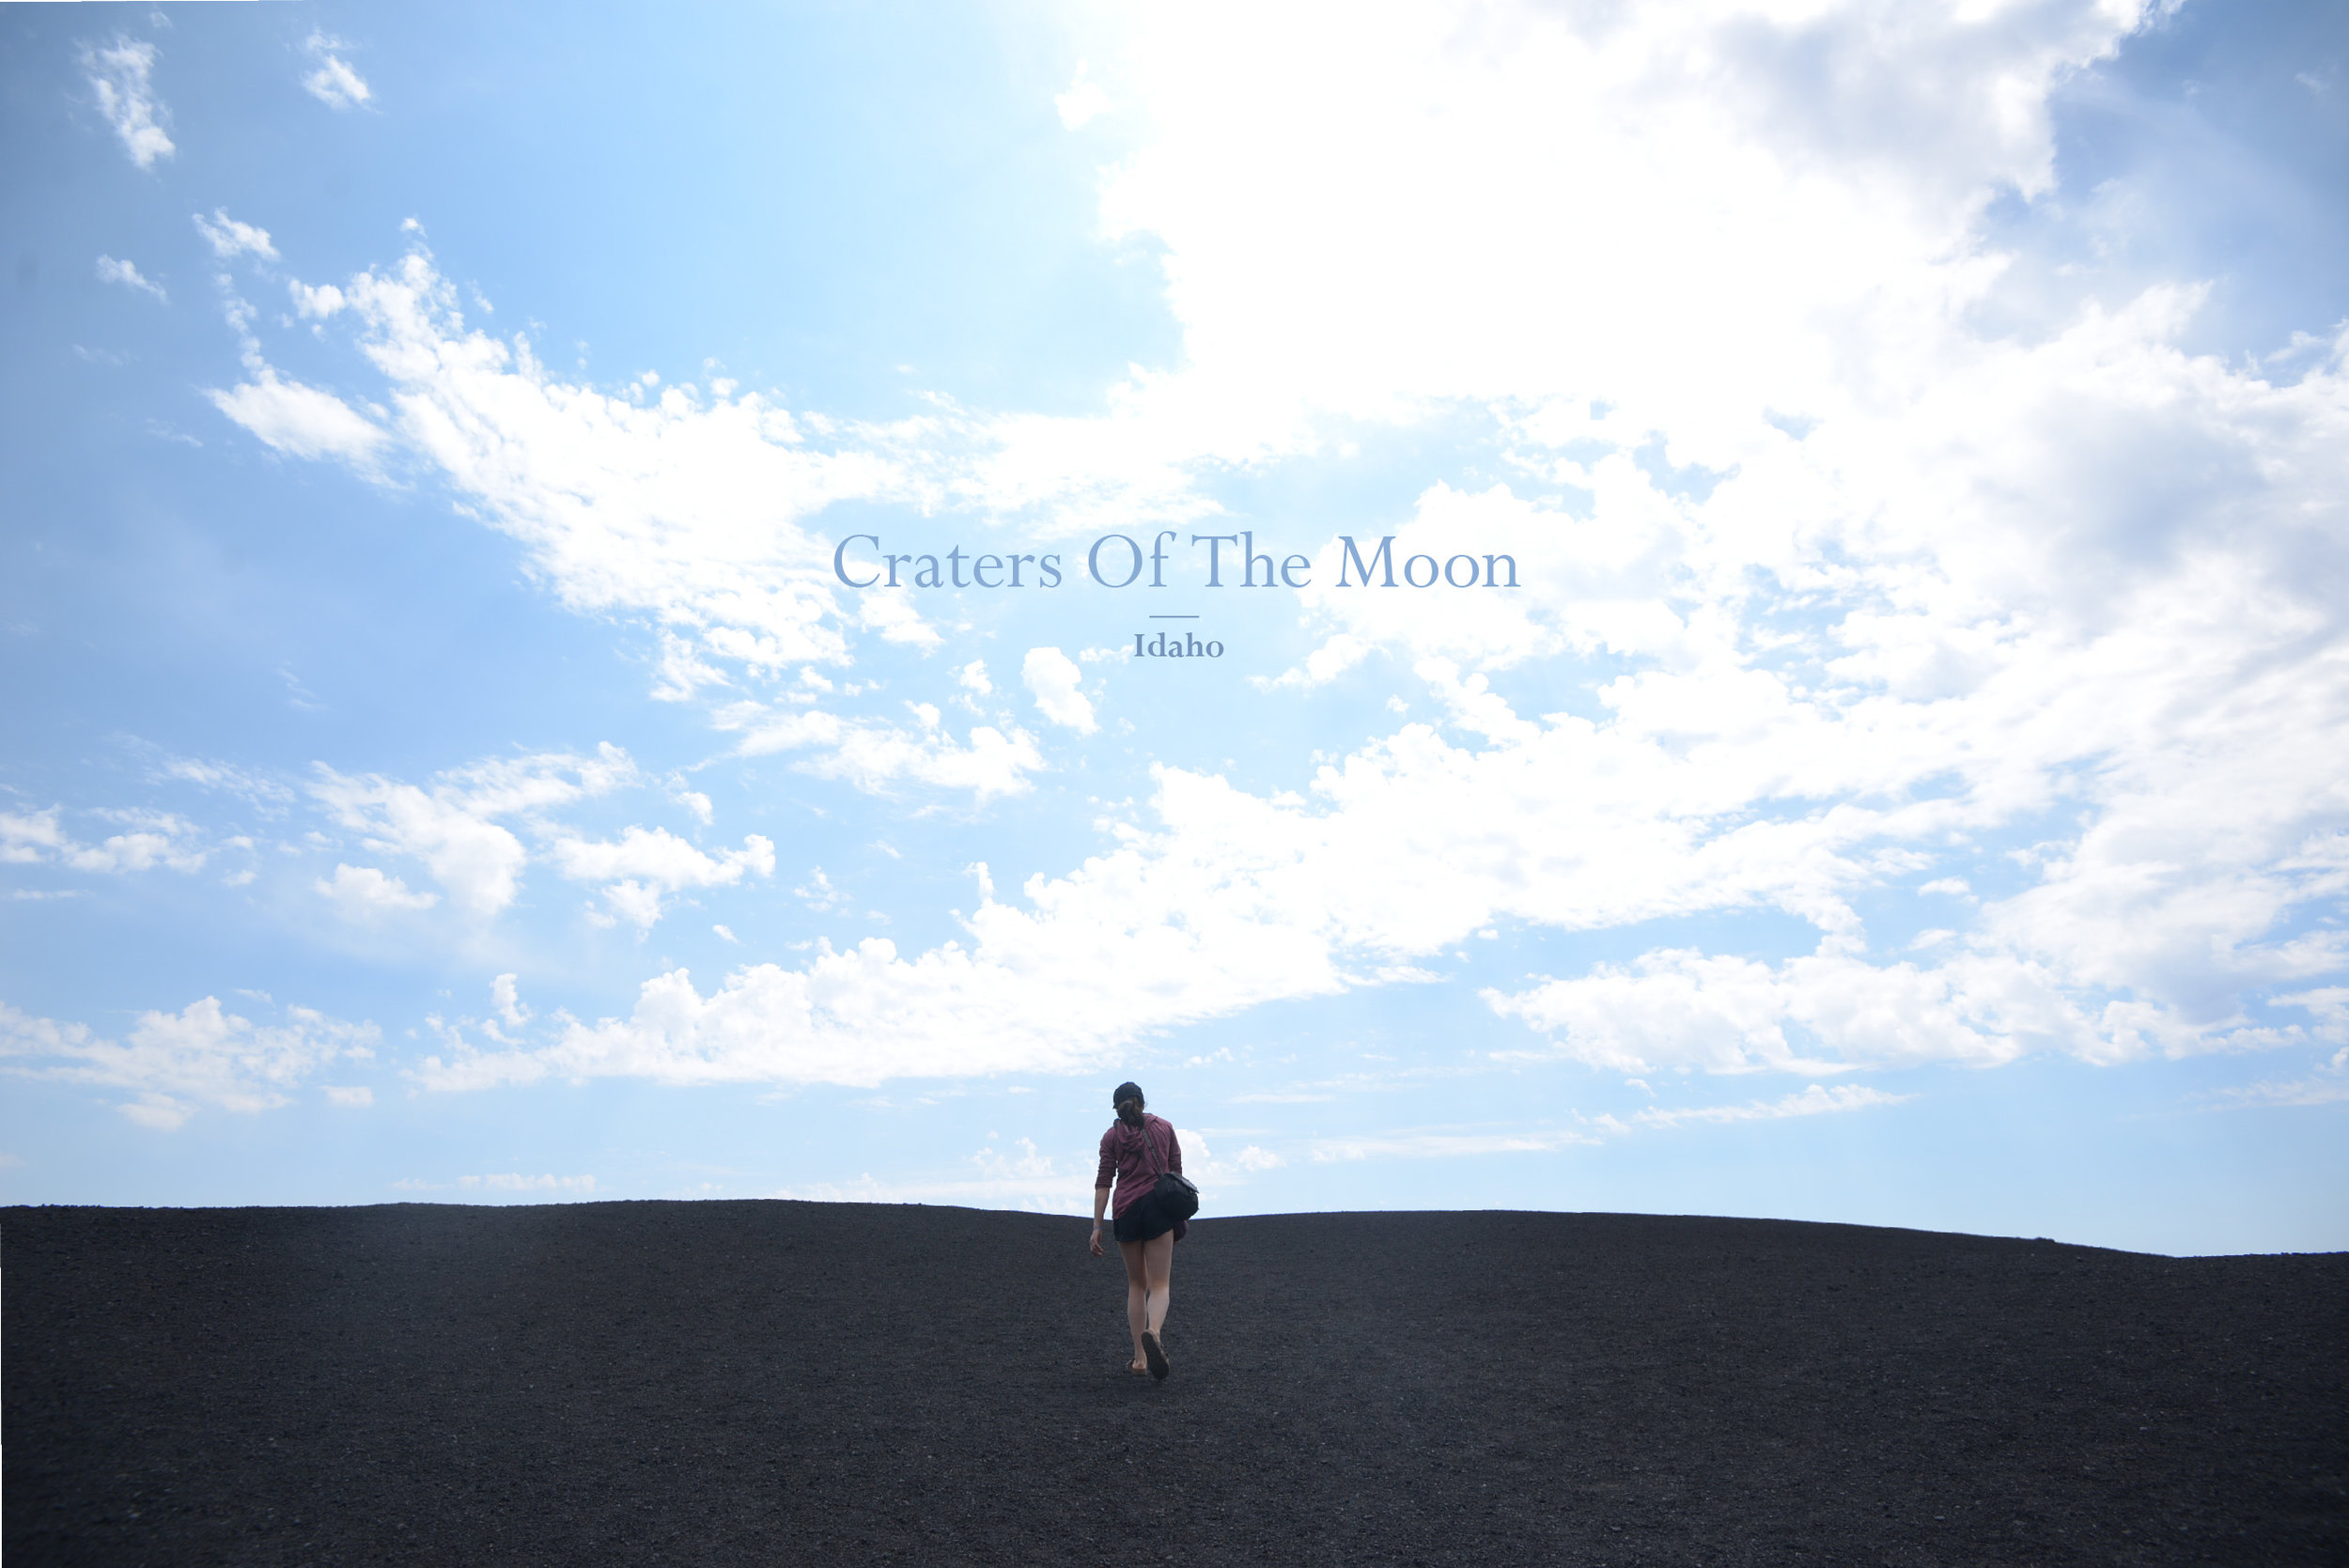 craters of the moon-03.jpg